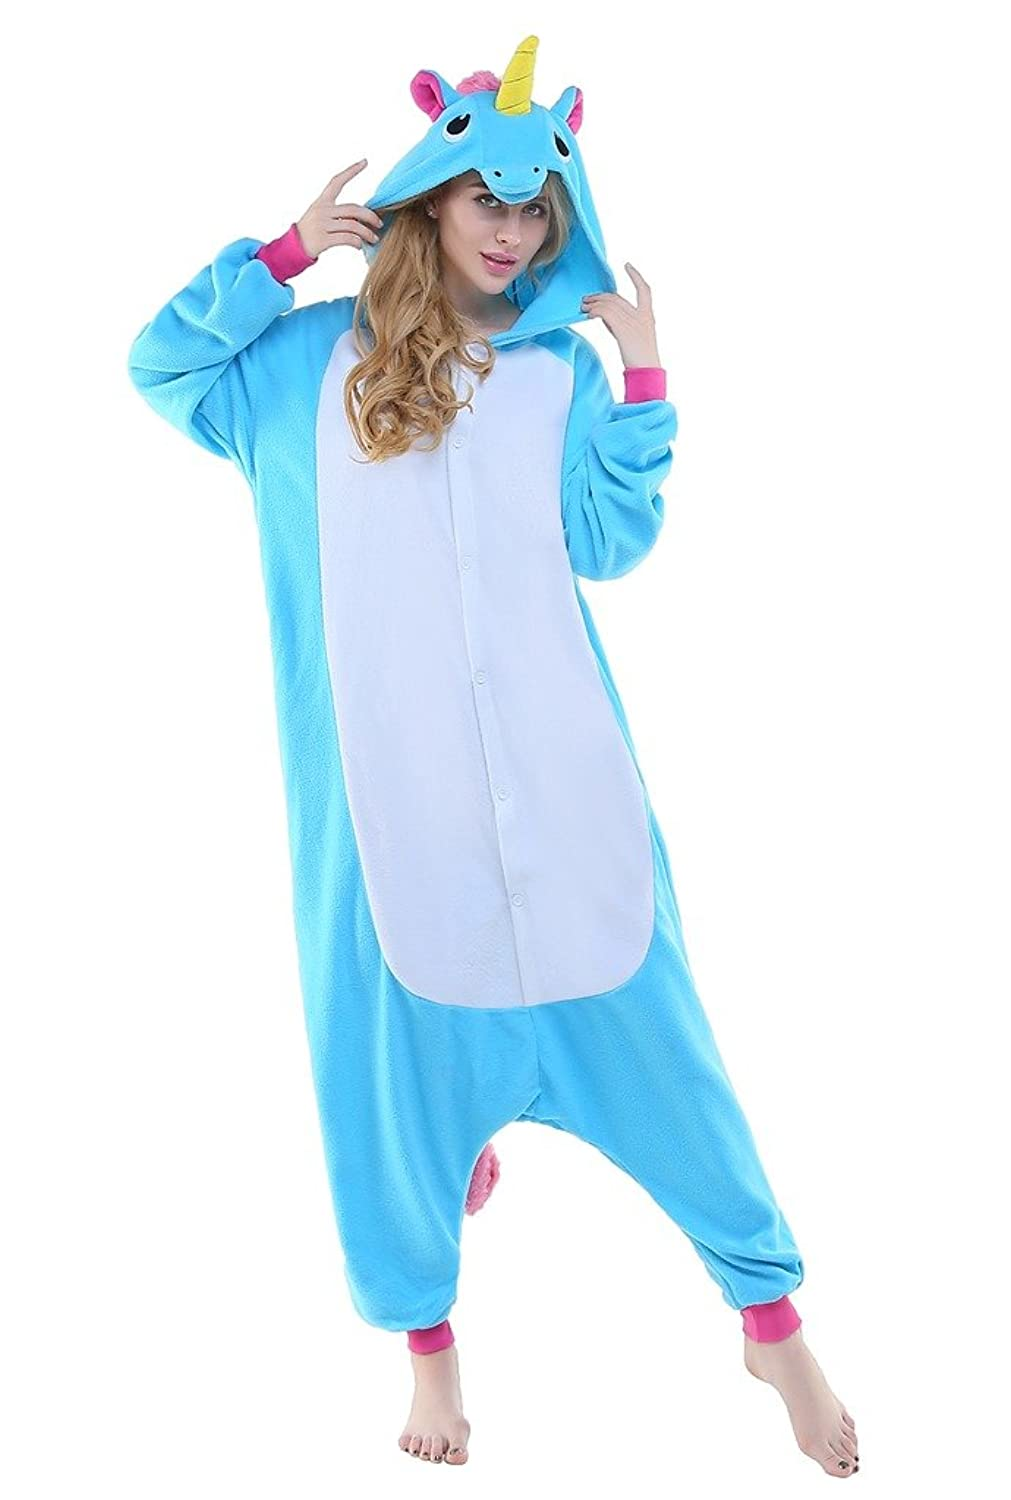 Amazon.com: Cosplay Costume Pajamas Carnival Outfit Anime Adult ...